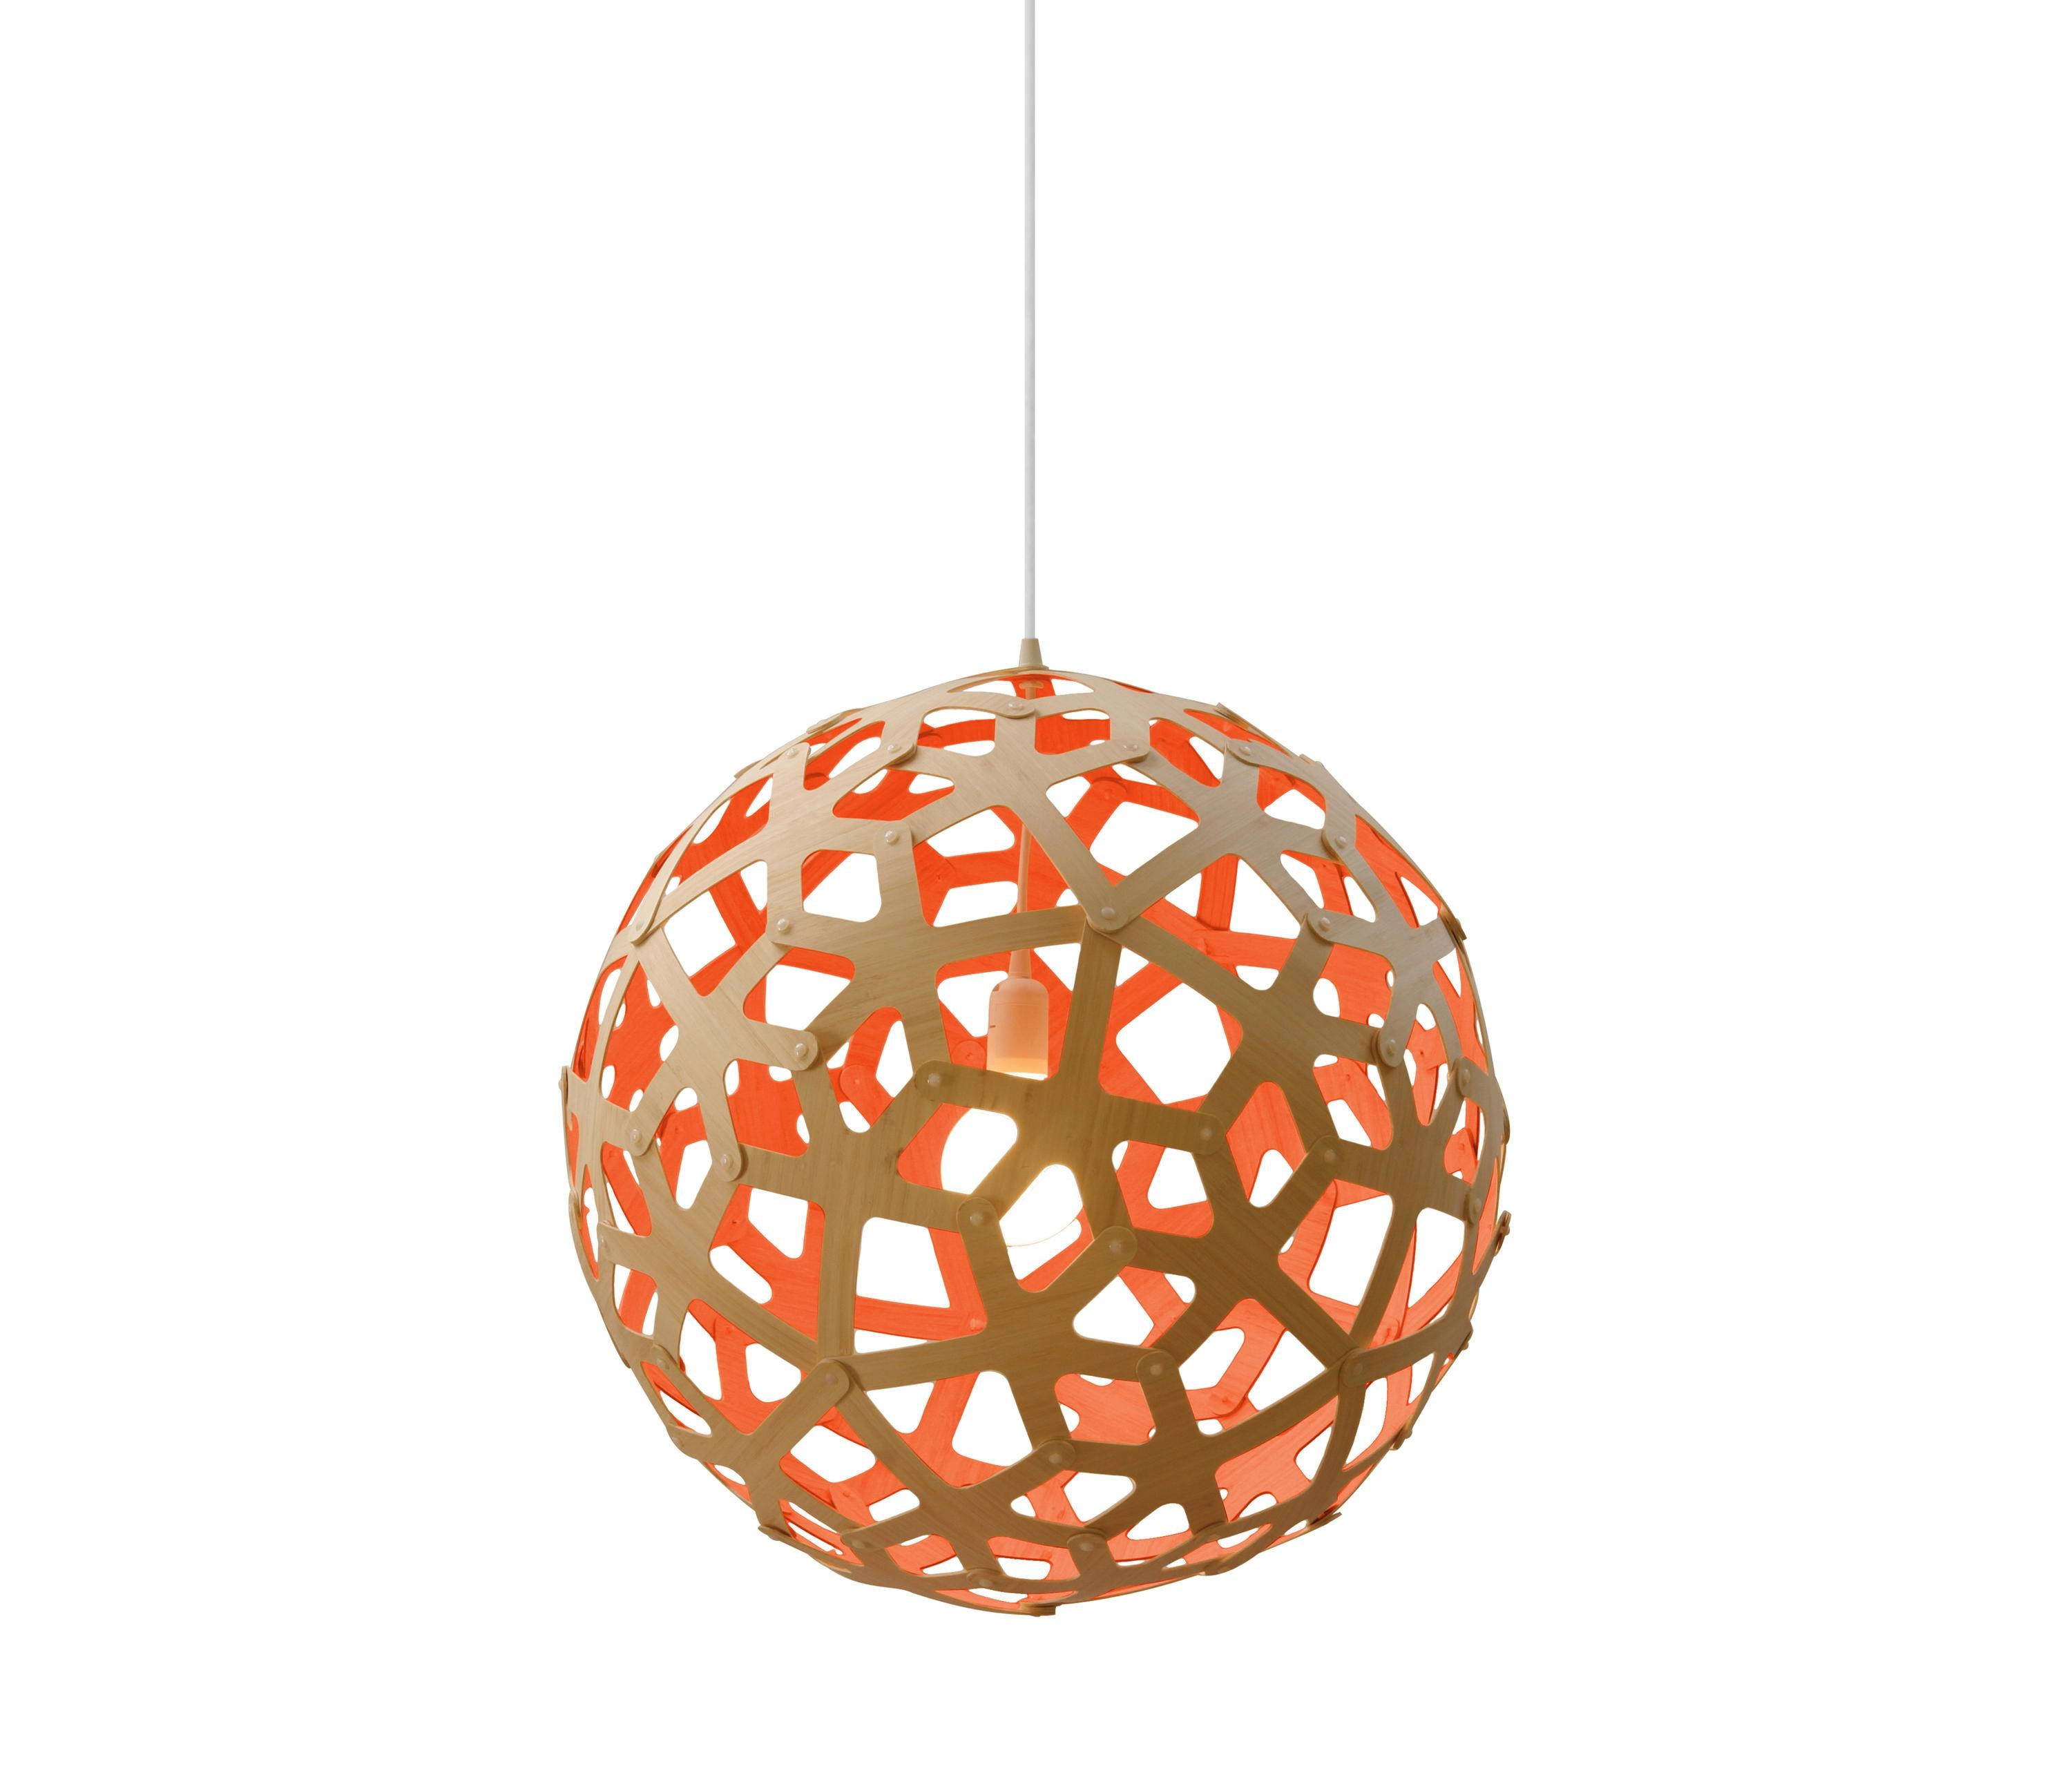 Coral – General Lighting From David Trubridge | Architonic Inside Coral Pendant Light Replicas (View 2 of 15)